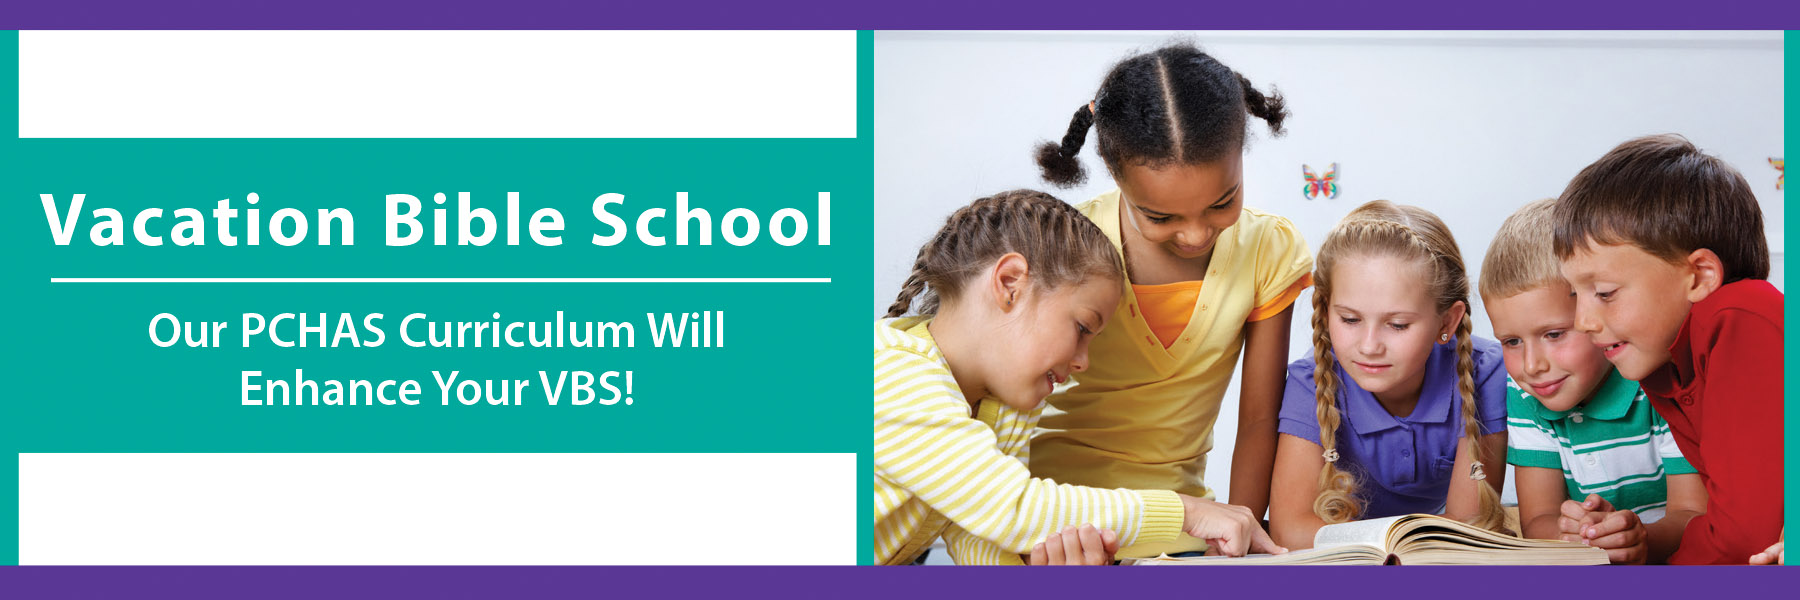 VBS Webpage Banner